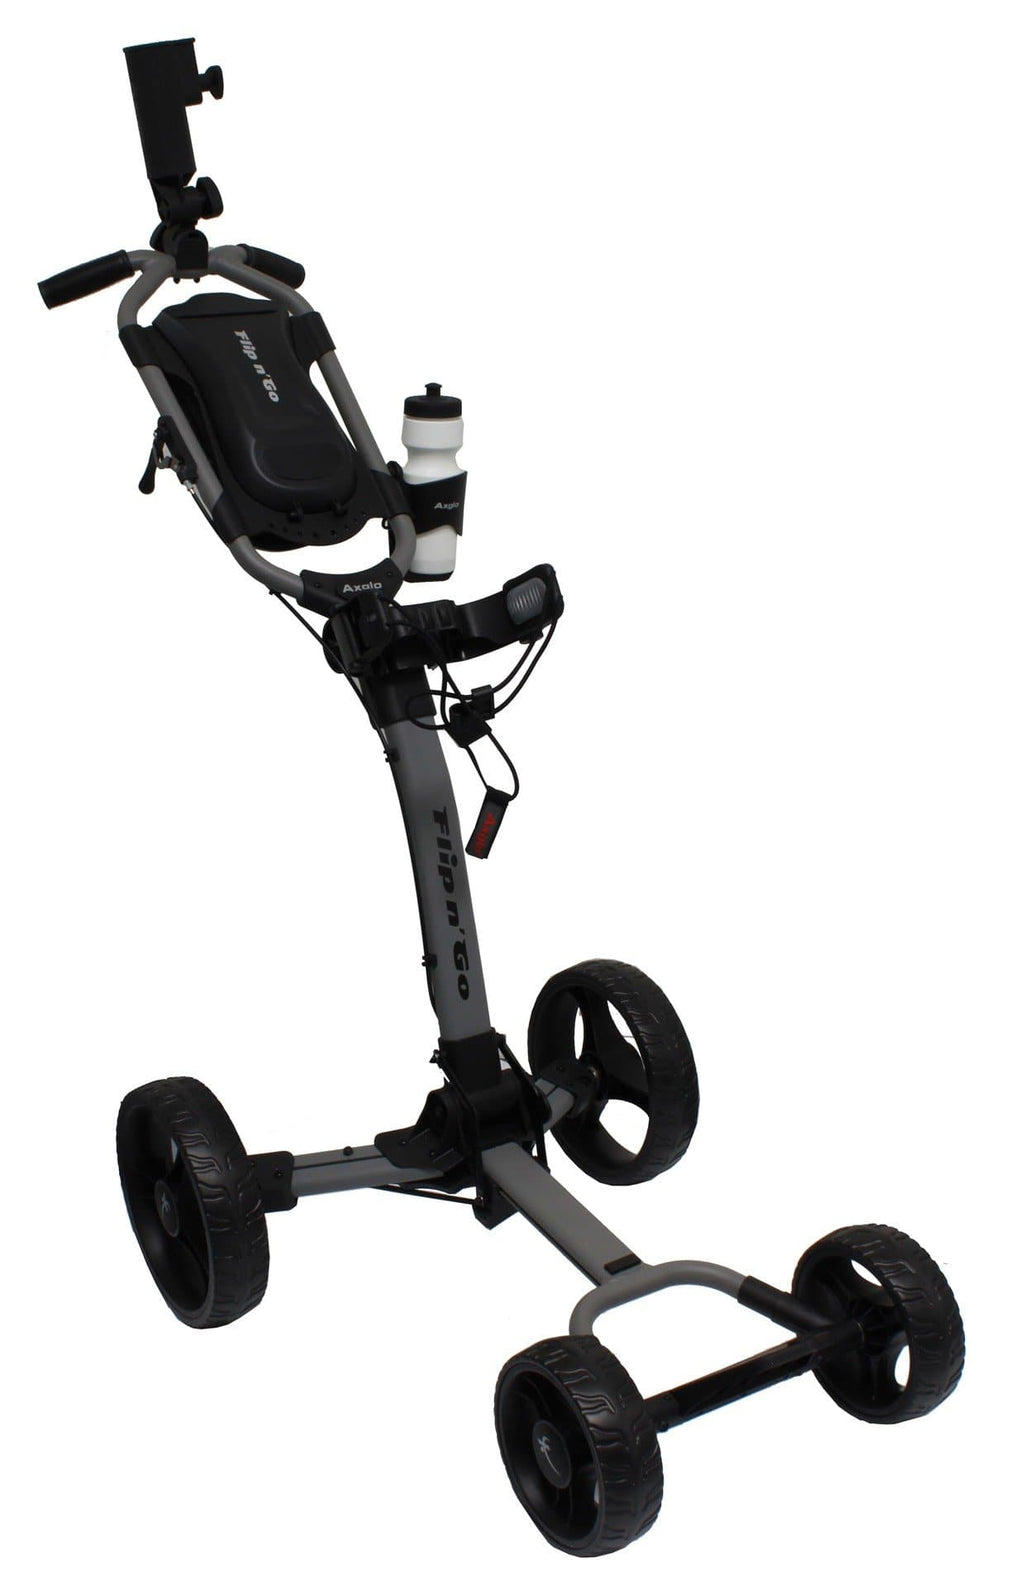 Axglo Flip N' Go 4 Wheel Push Cart (Grey Frame)